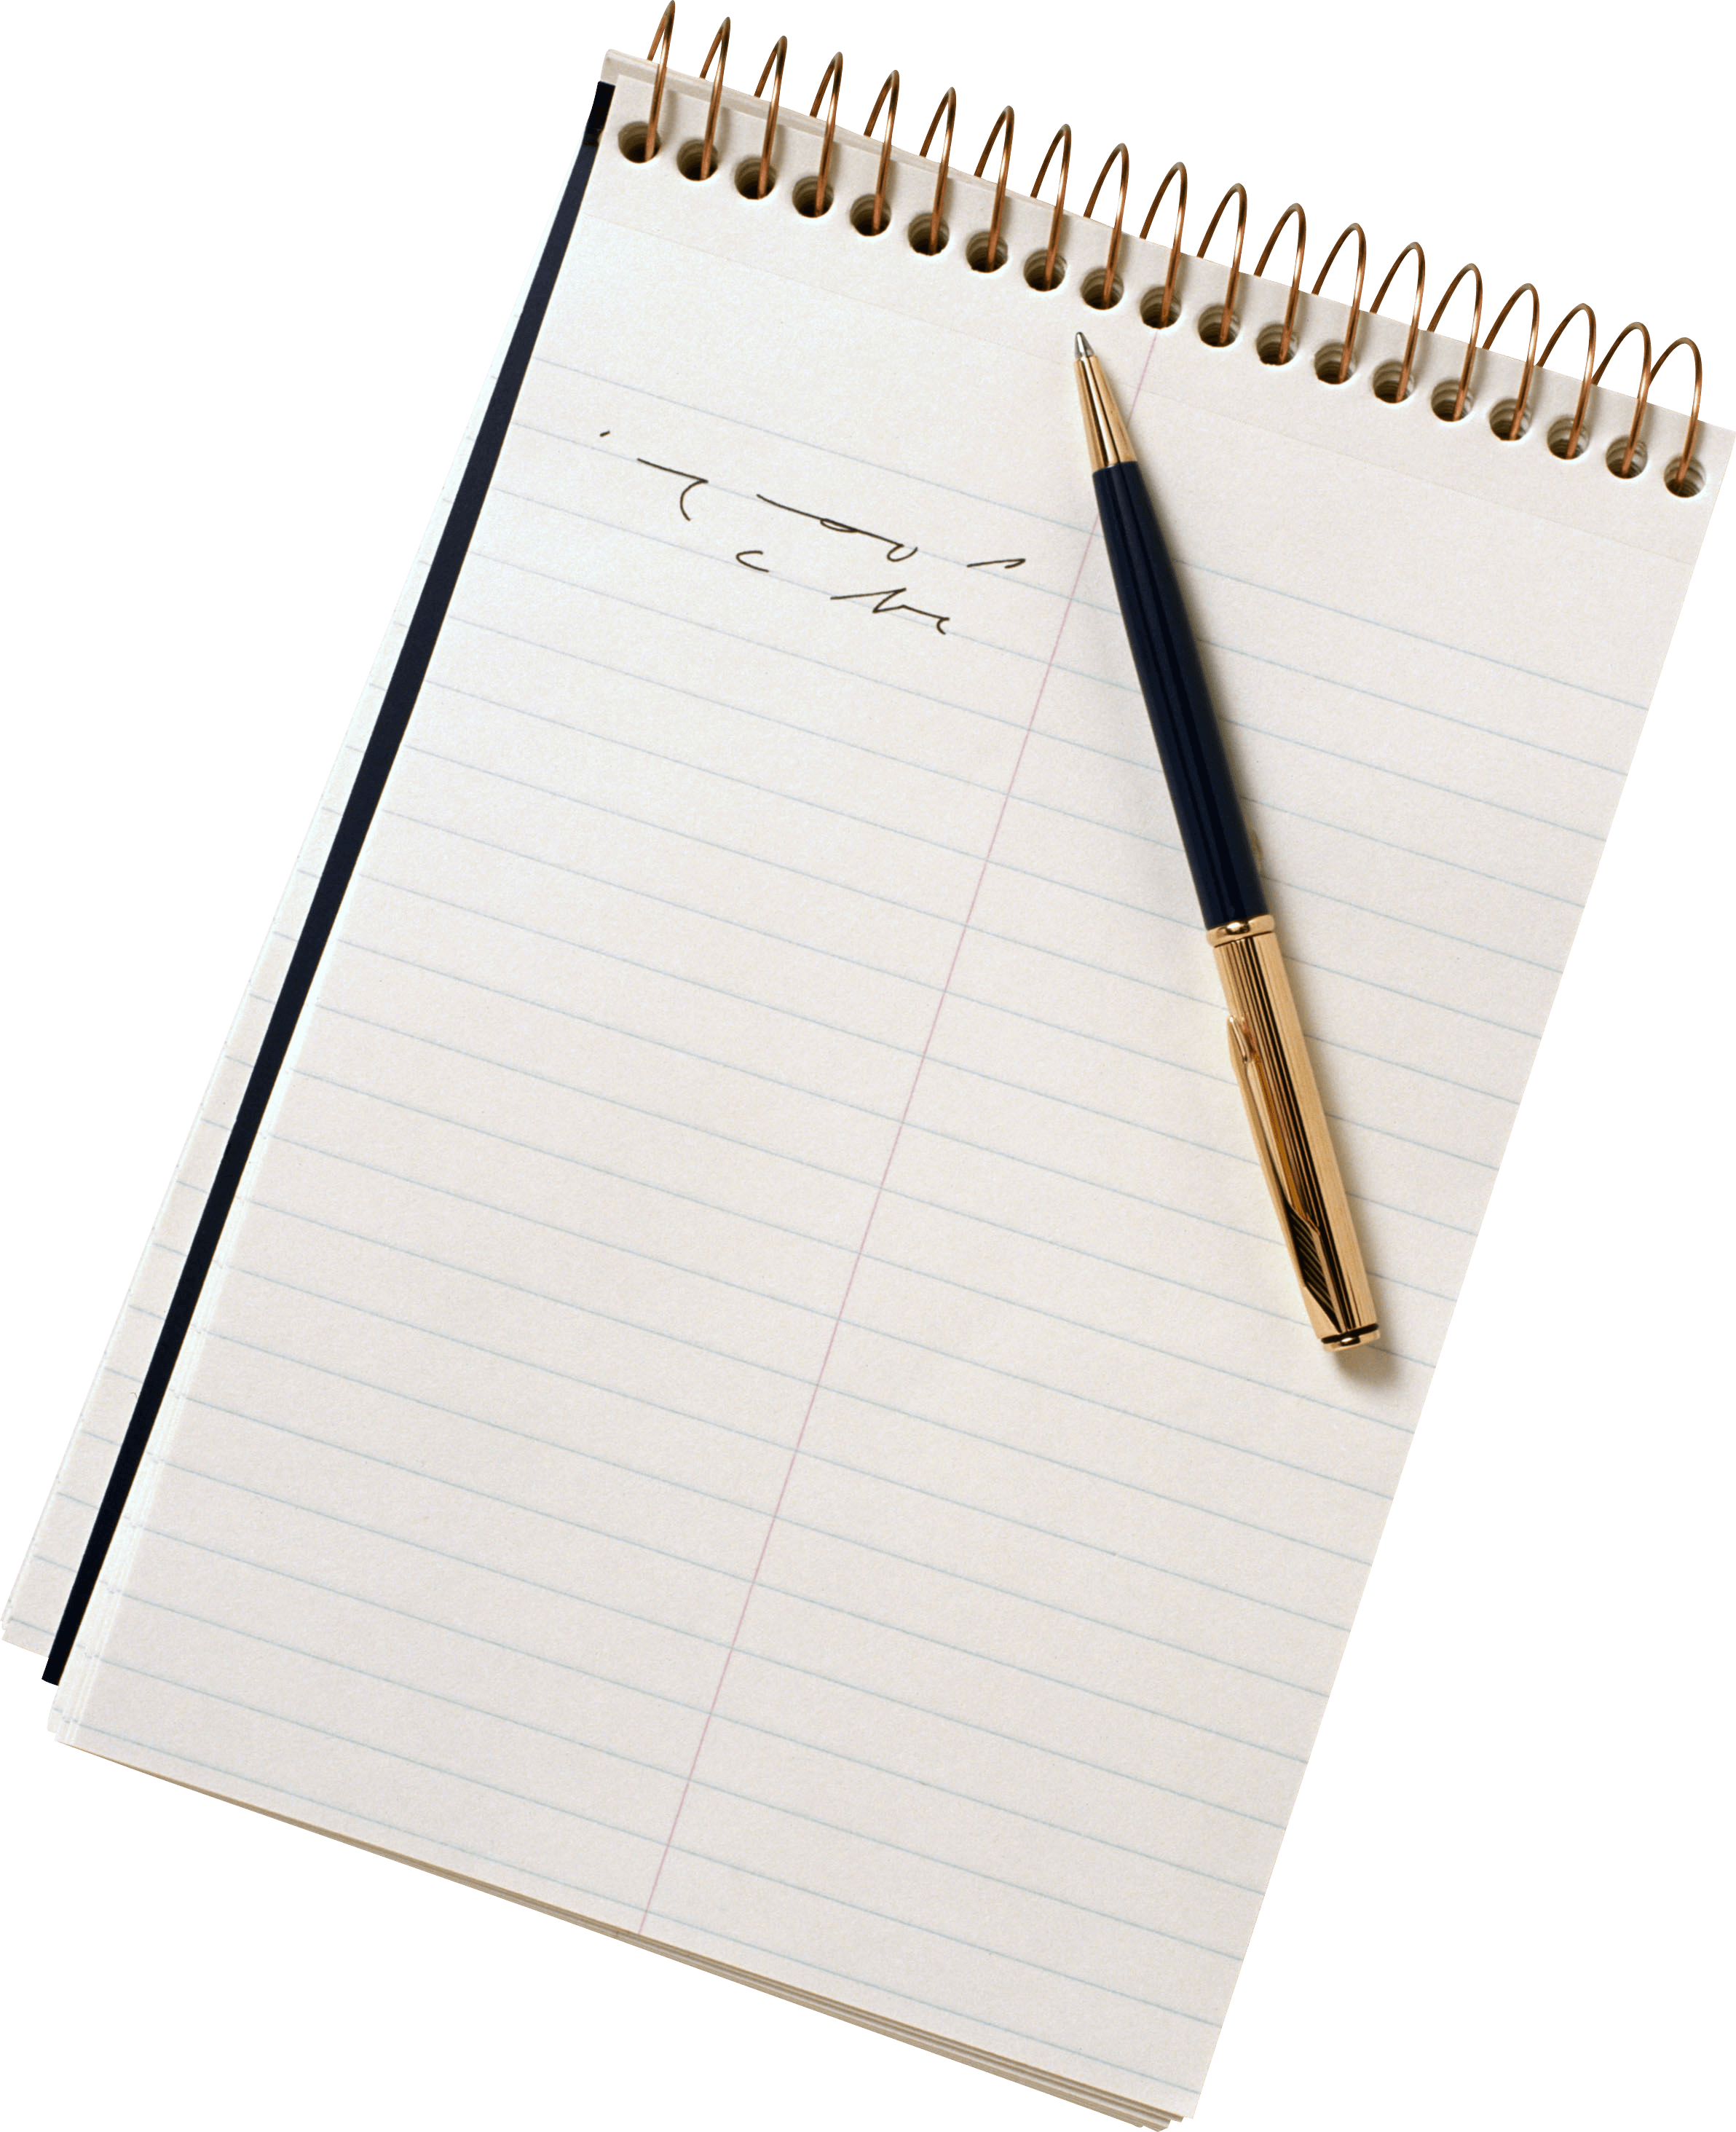 Paper sheet transparent stickpng. Notebook and pen png png